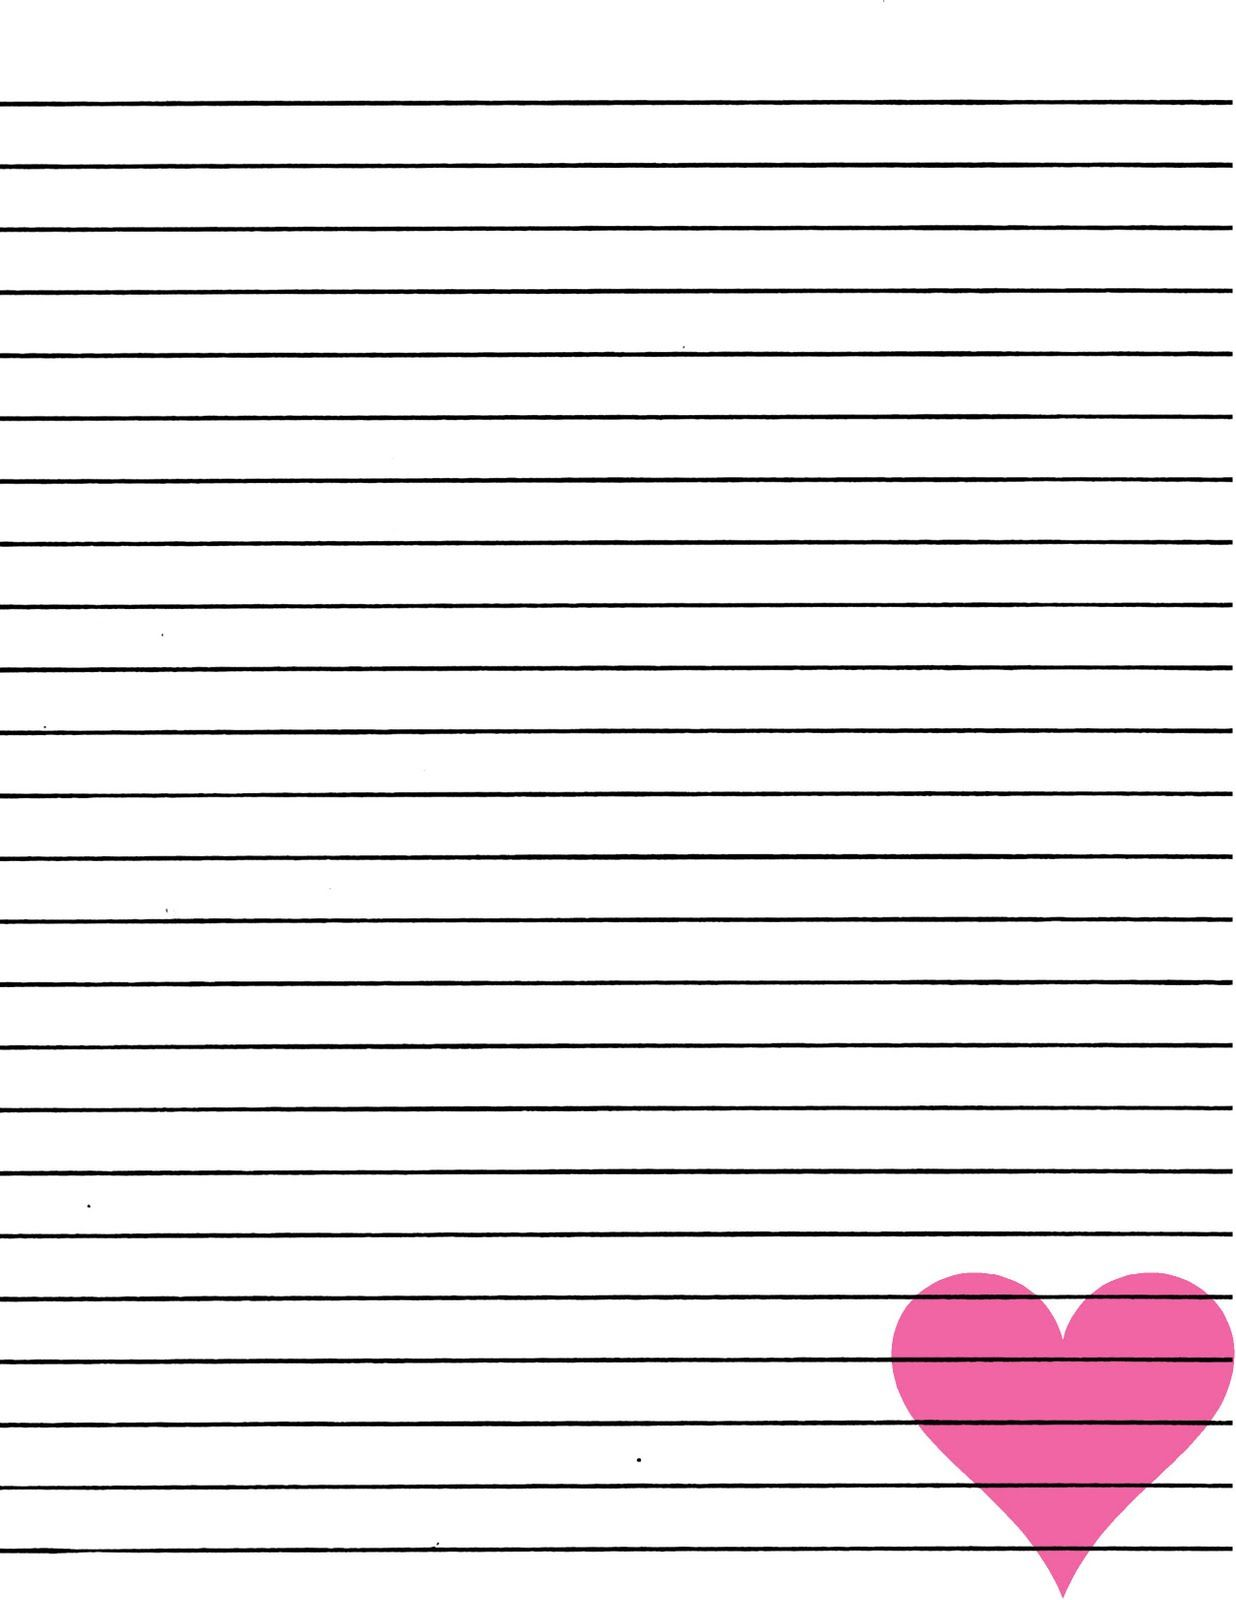 Just Smashing Paper FREEBIE Pink heart lined paper printable – Lined Paper Template